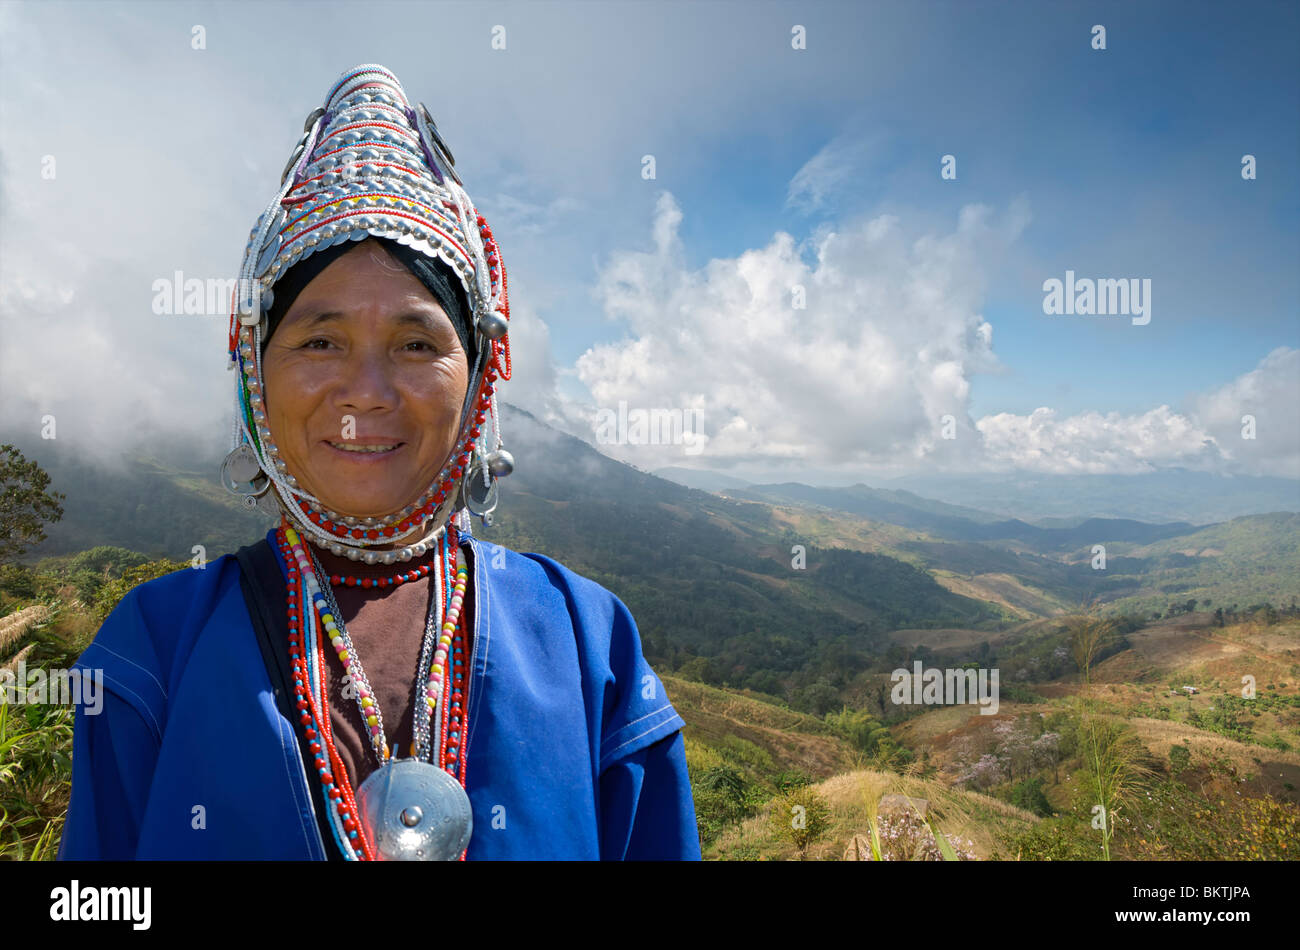 Akha hill tribe woman in Chiang Rai province, Thailand. - Stock Image